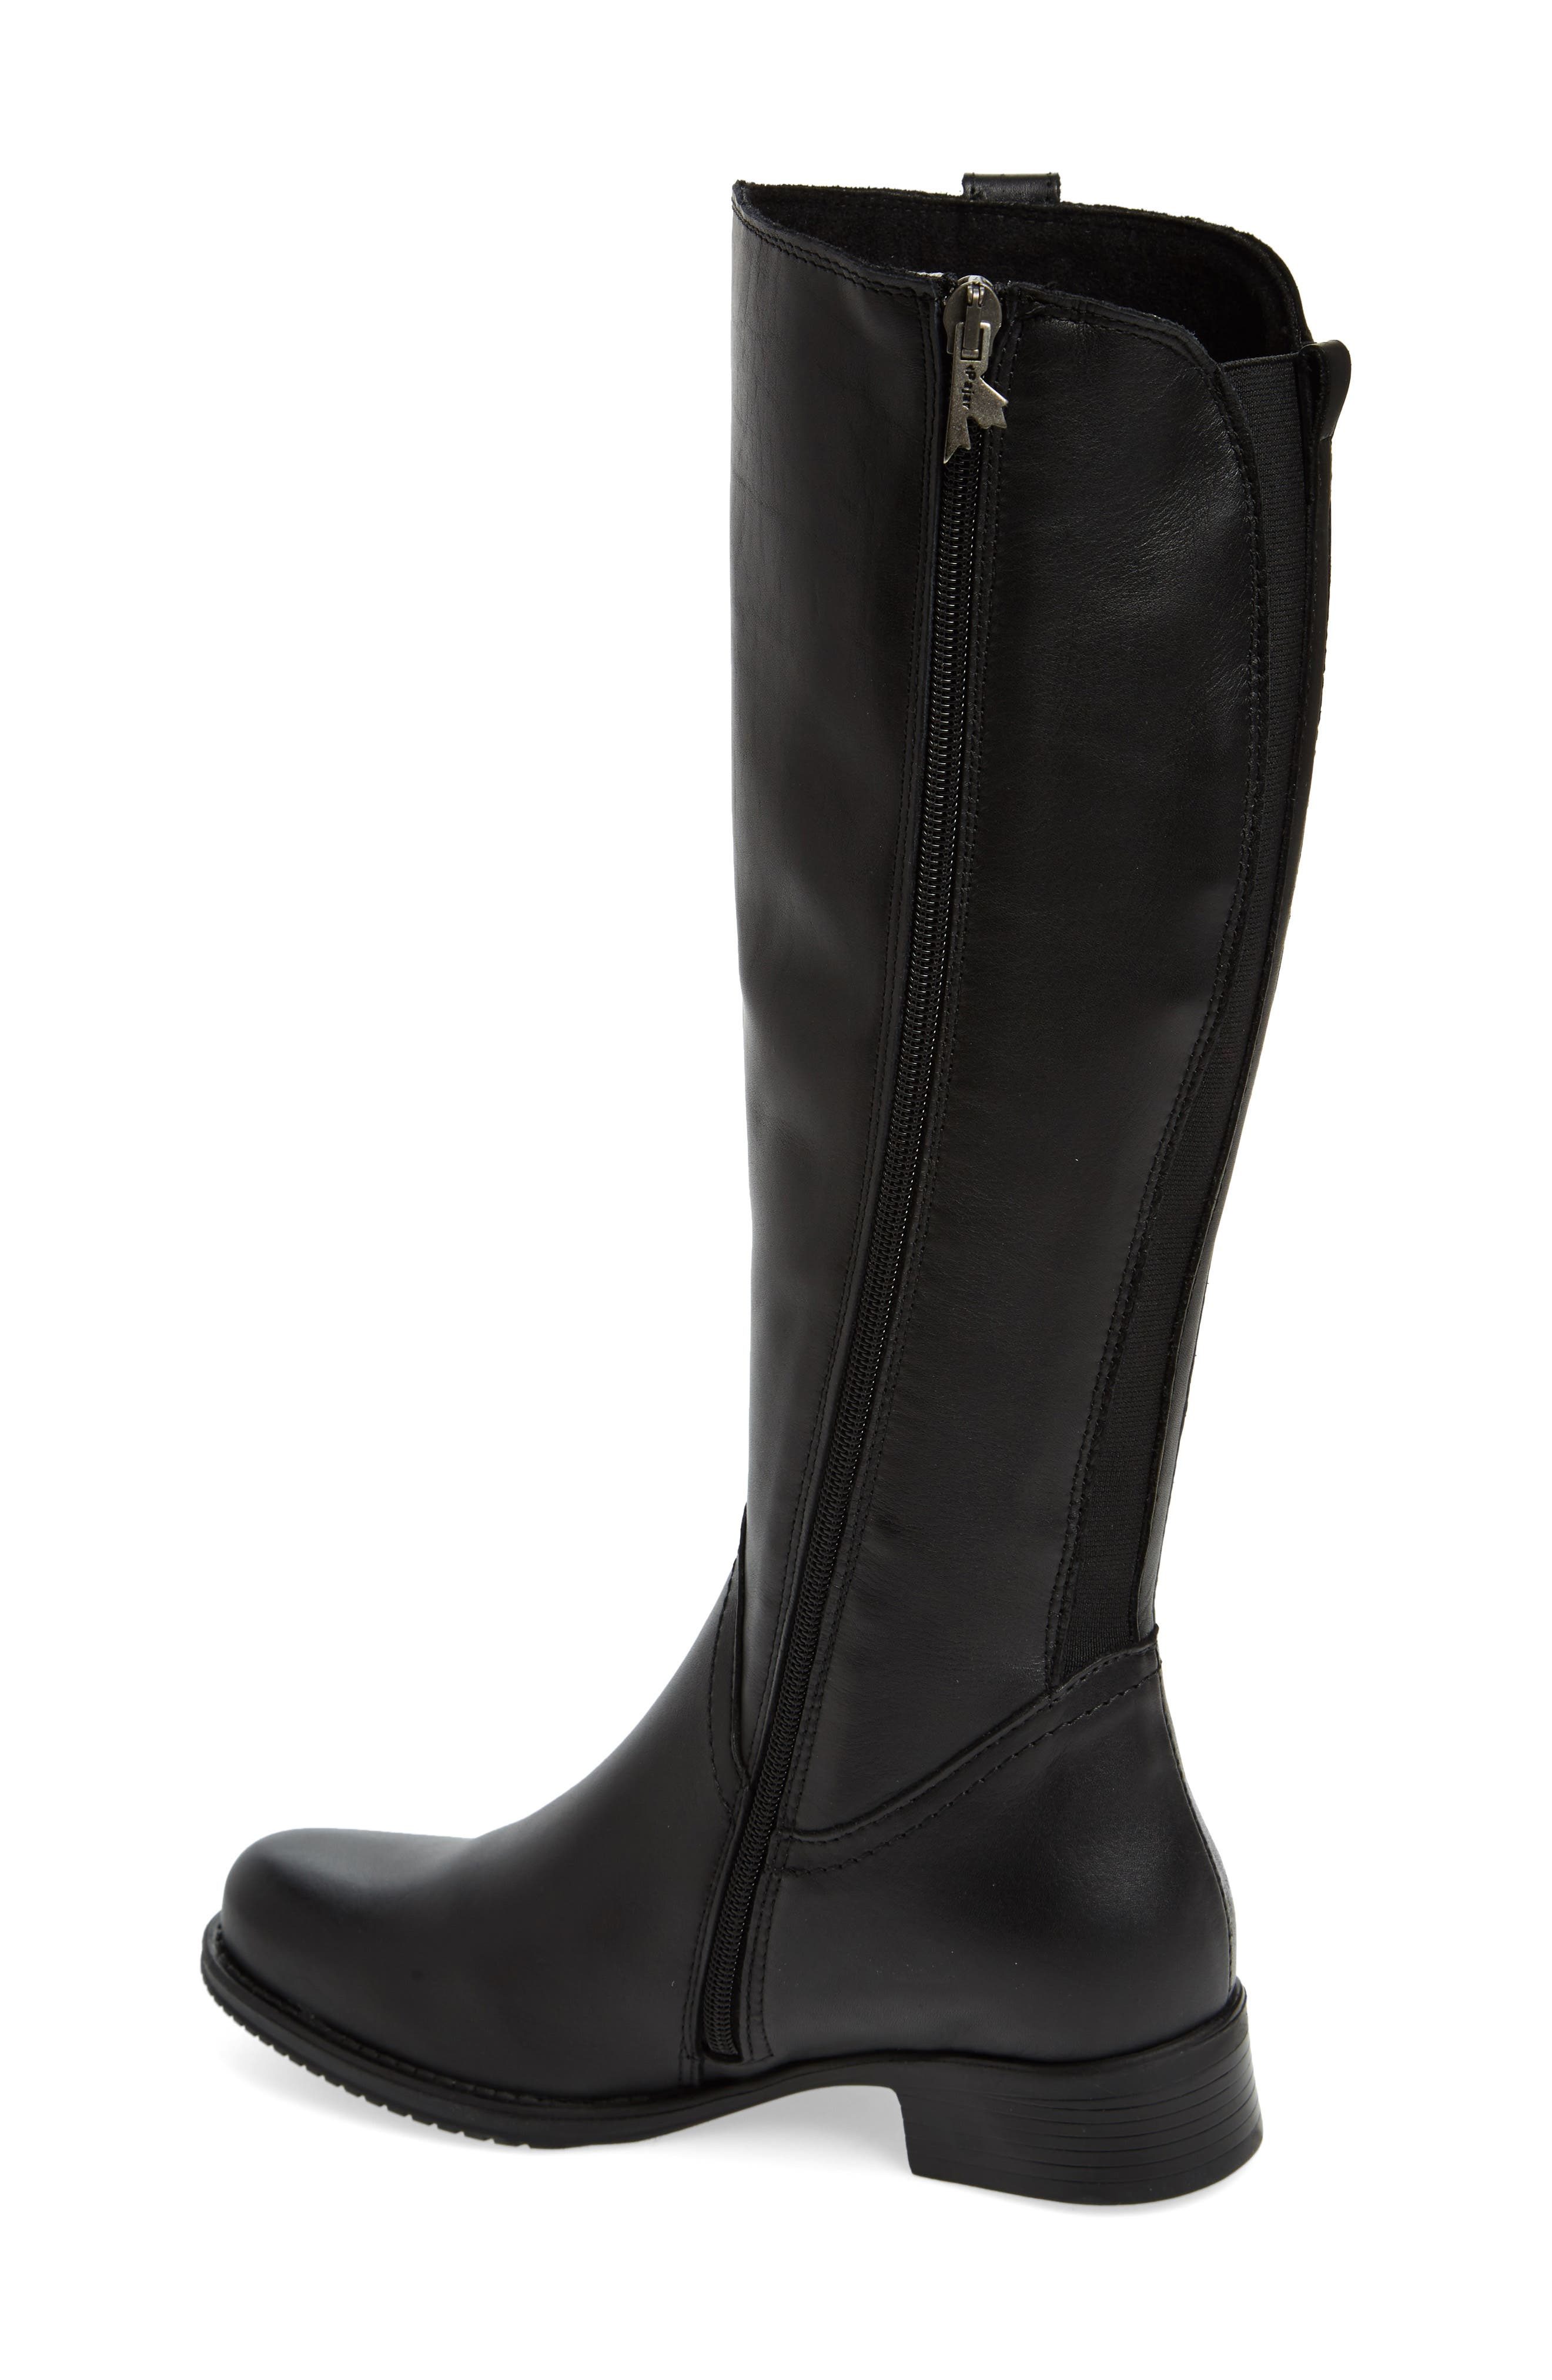 Dogueno Waterproof Boot,                             Alternate thumbnail 2, color,                             Black Leather